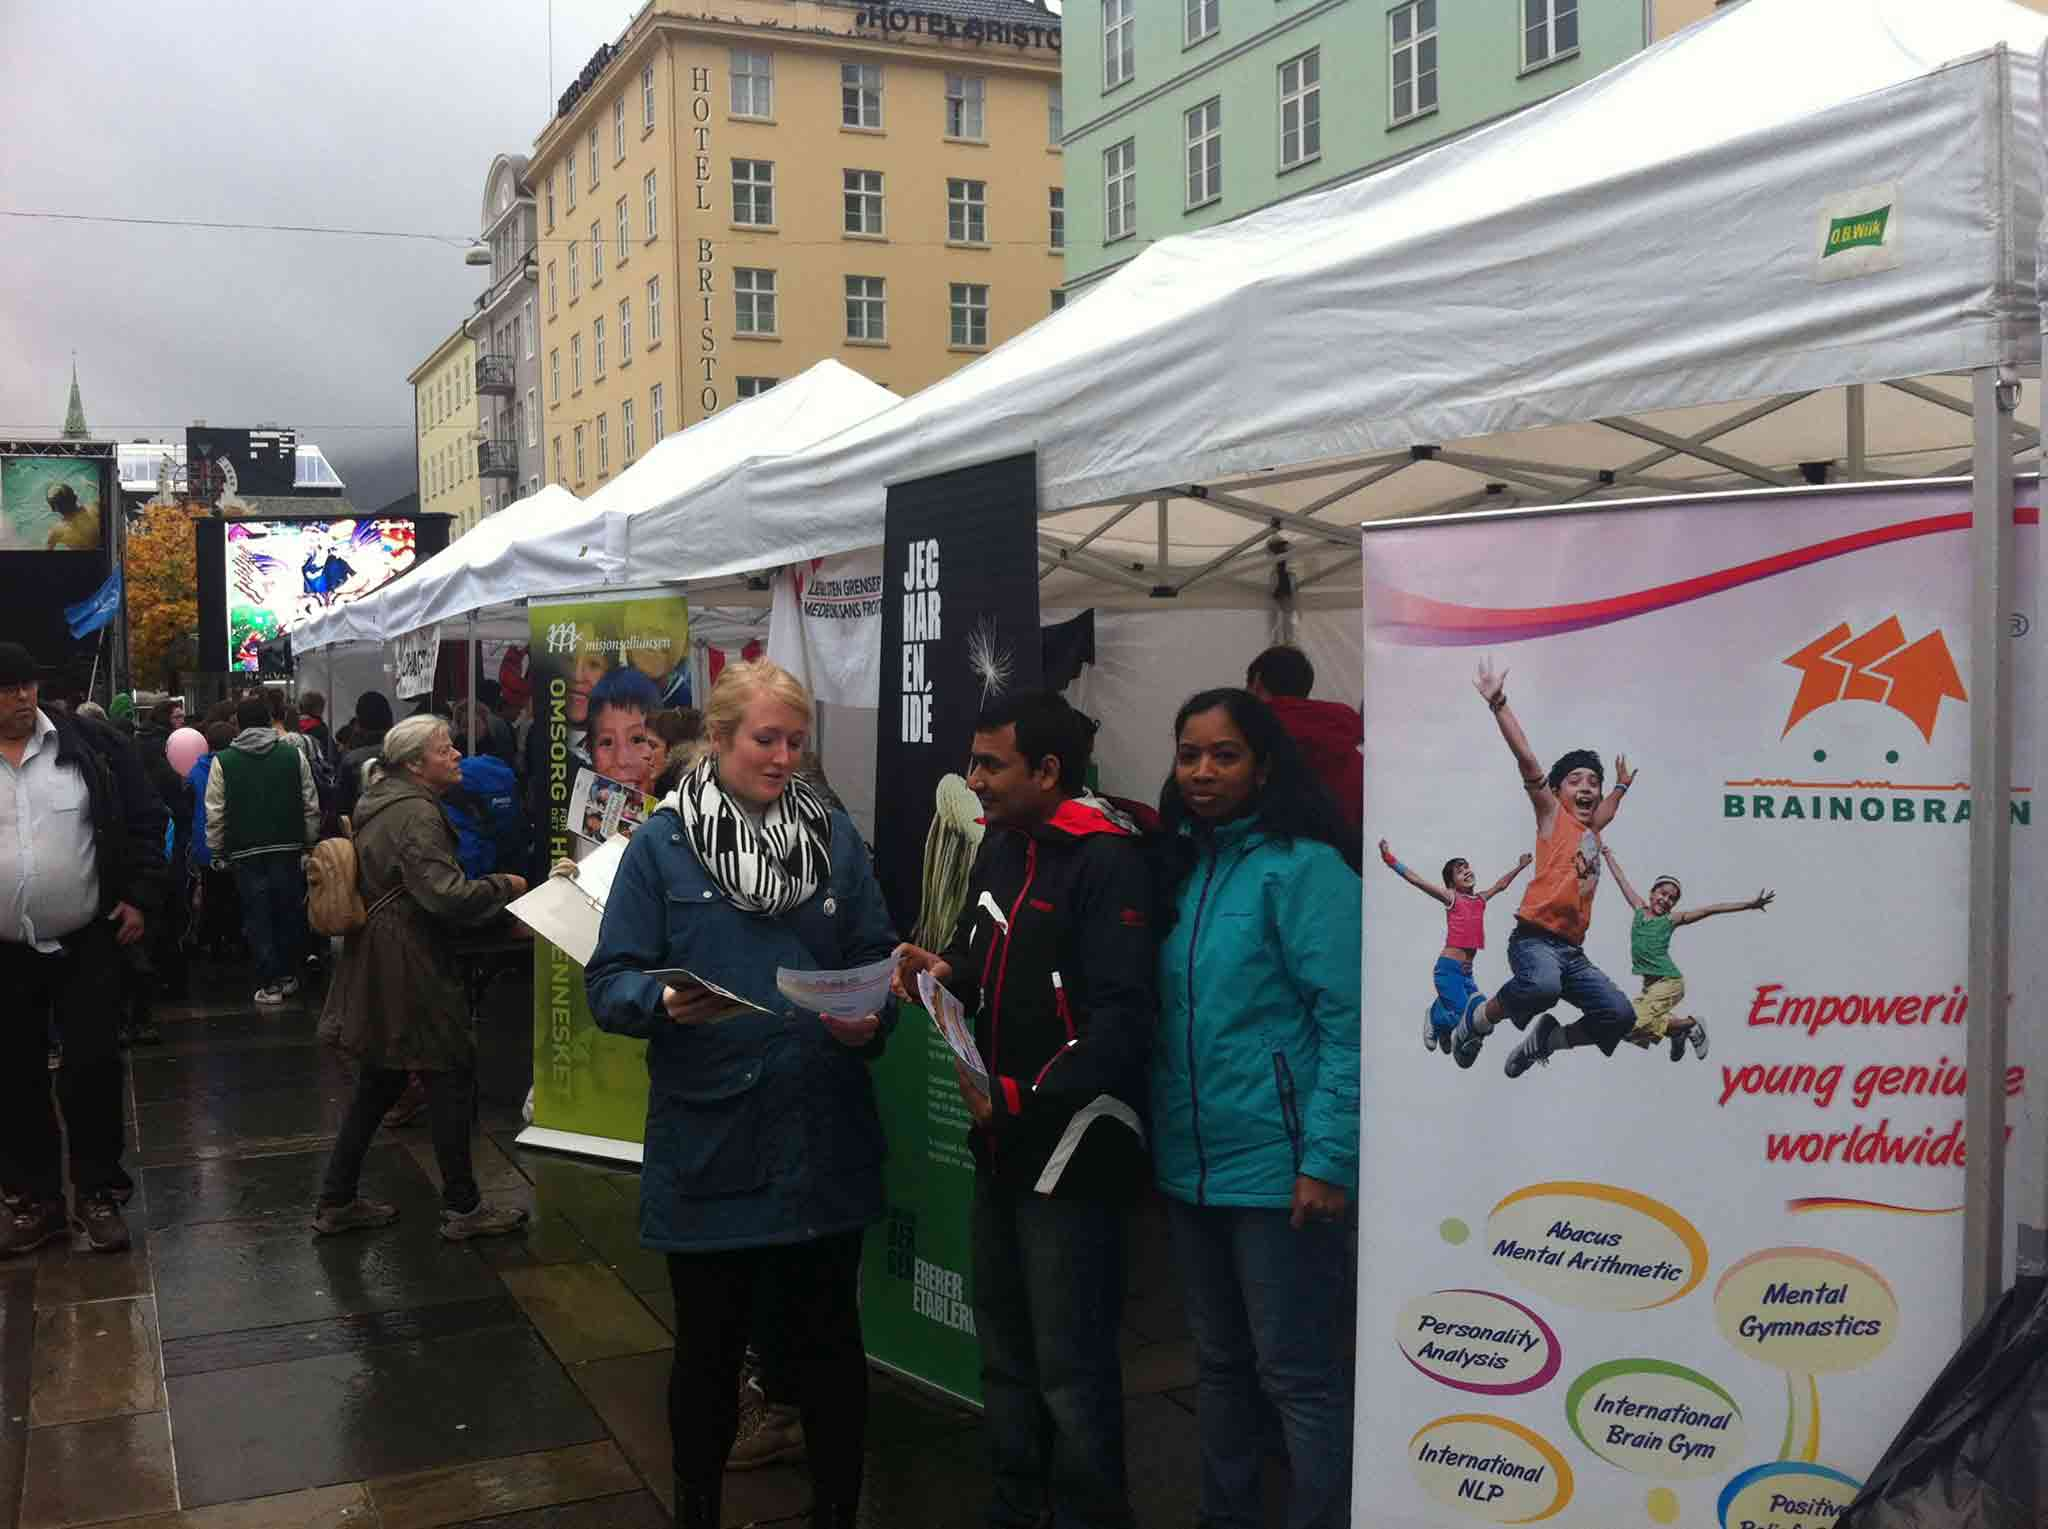 Bergen International Week 2014